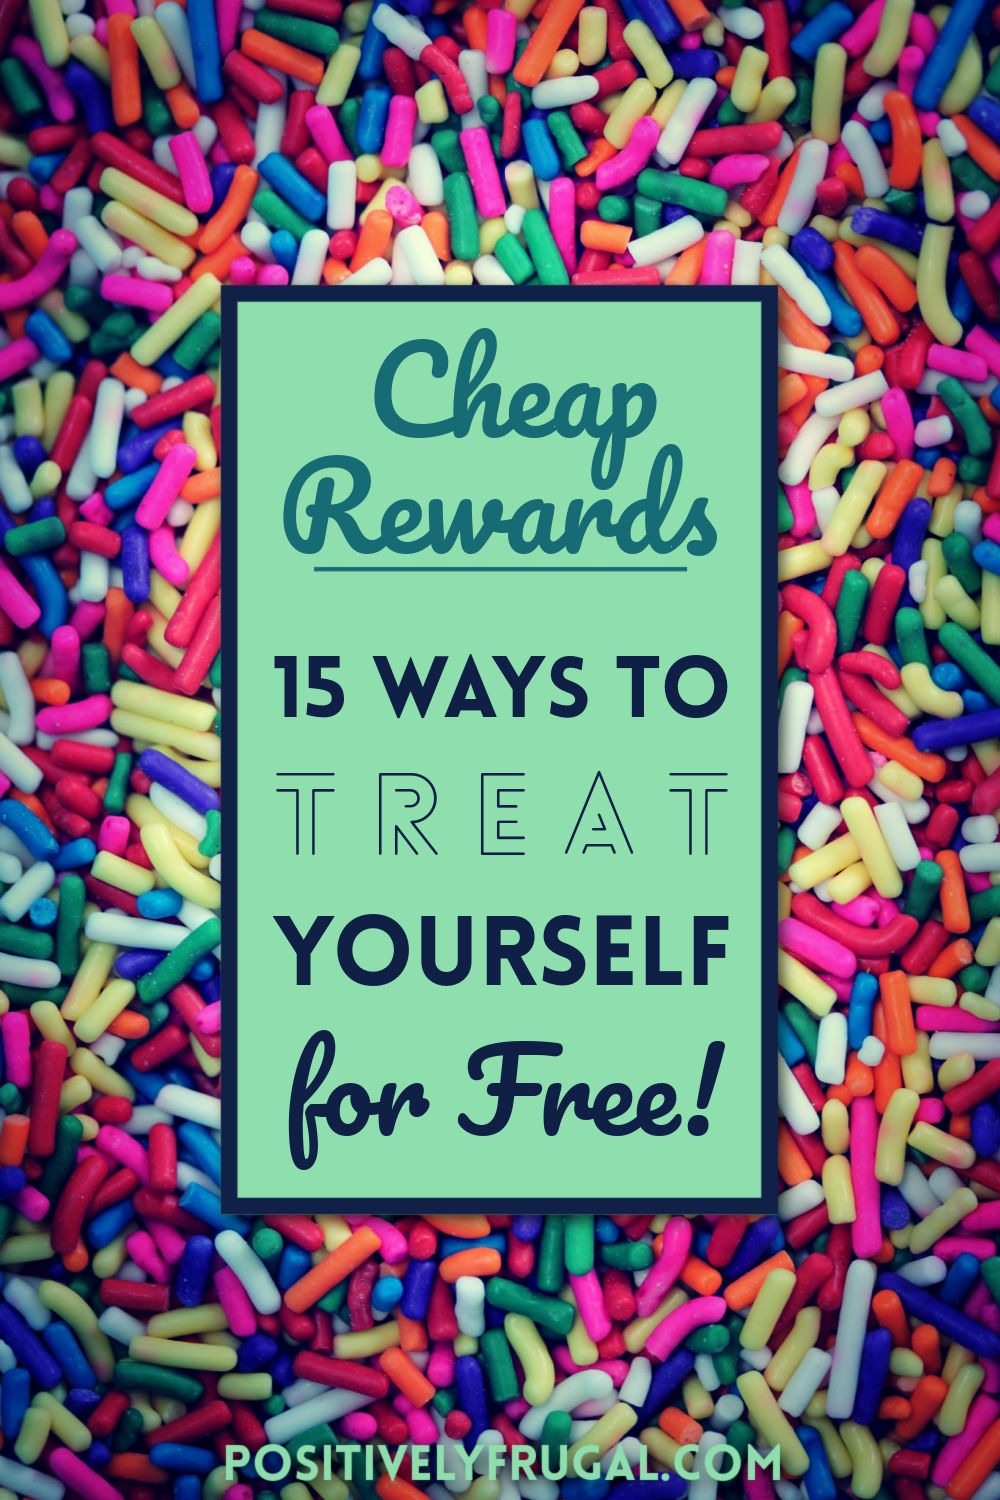 Ways to Treat Yourself for Free Cheap Rewards by PositivelyFrugal.com